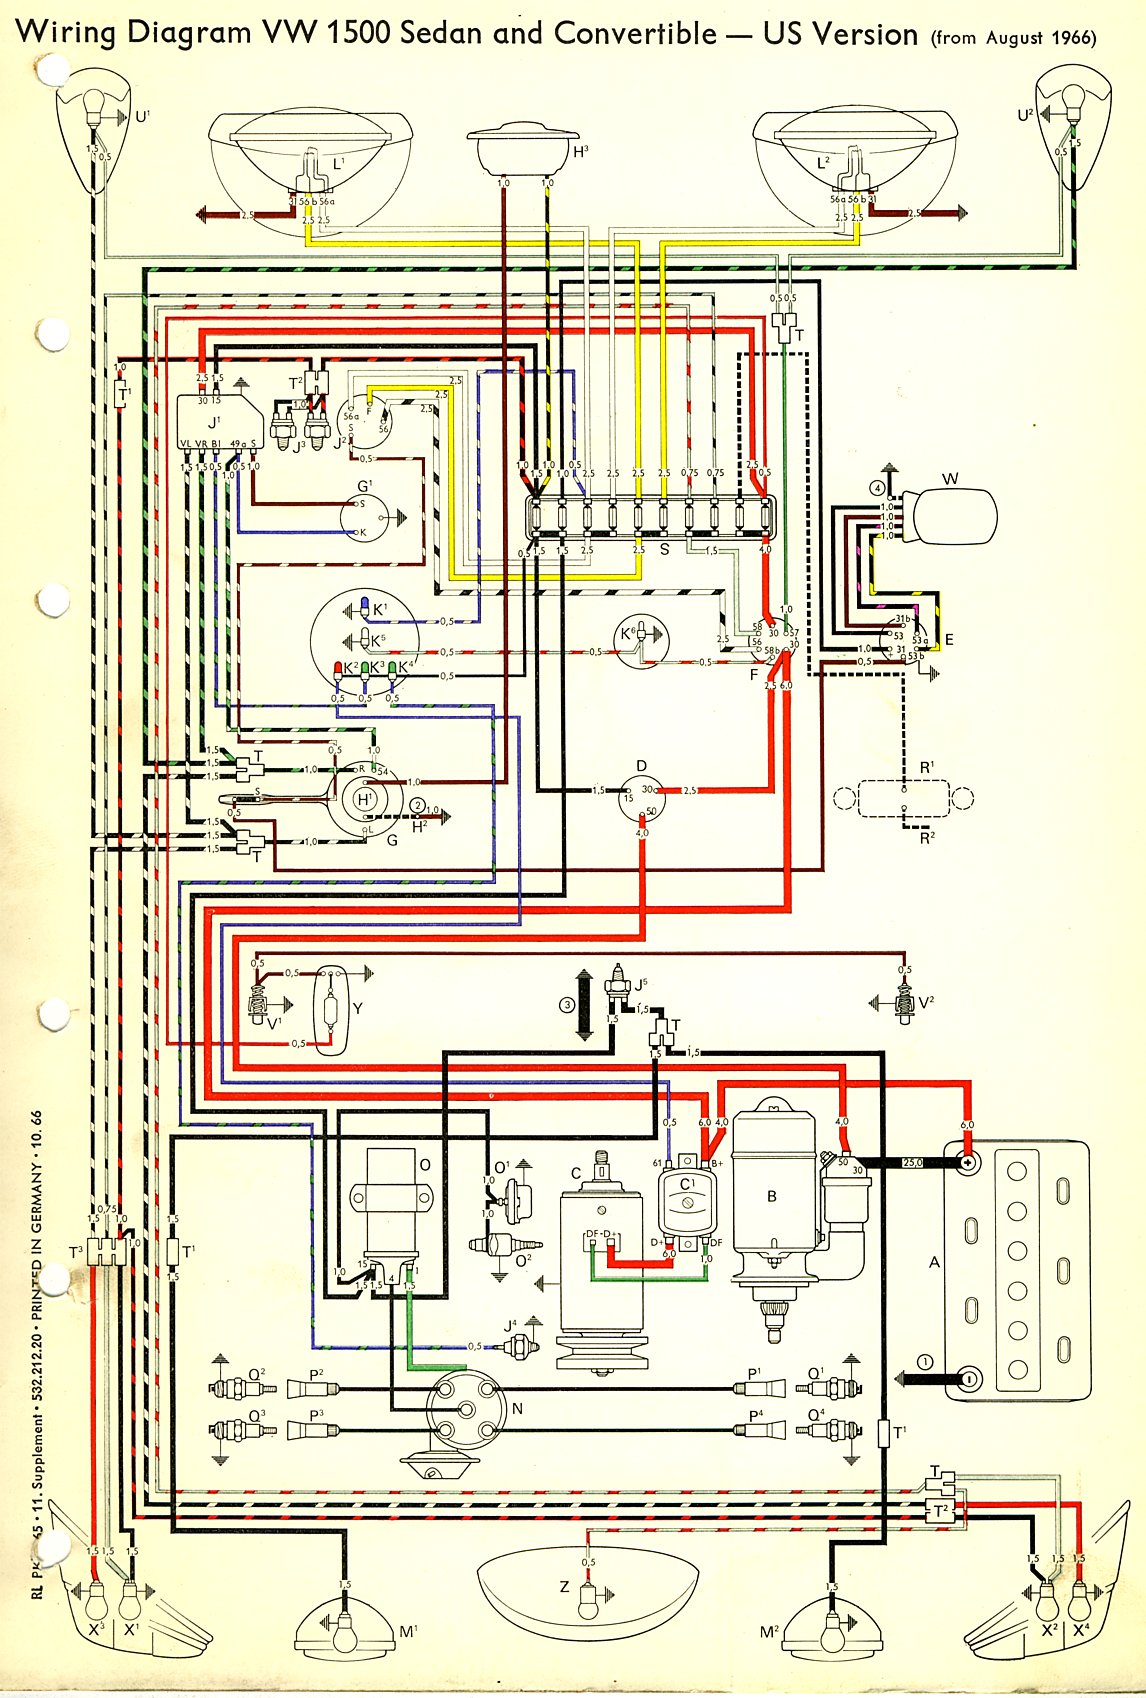 vw bug fuse diagram easy rules of wiring diagram u2022 rh ideoder co uk  1999 VW Beetle Fuse Diagram 68 VW Beetle Wiring Diagram